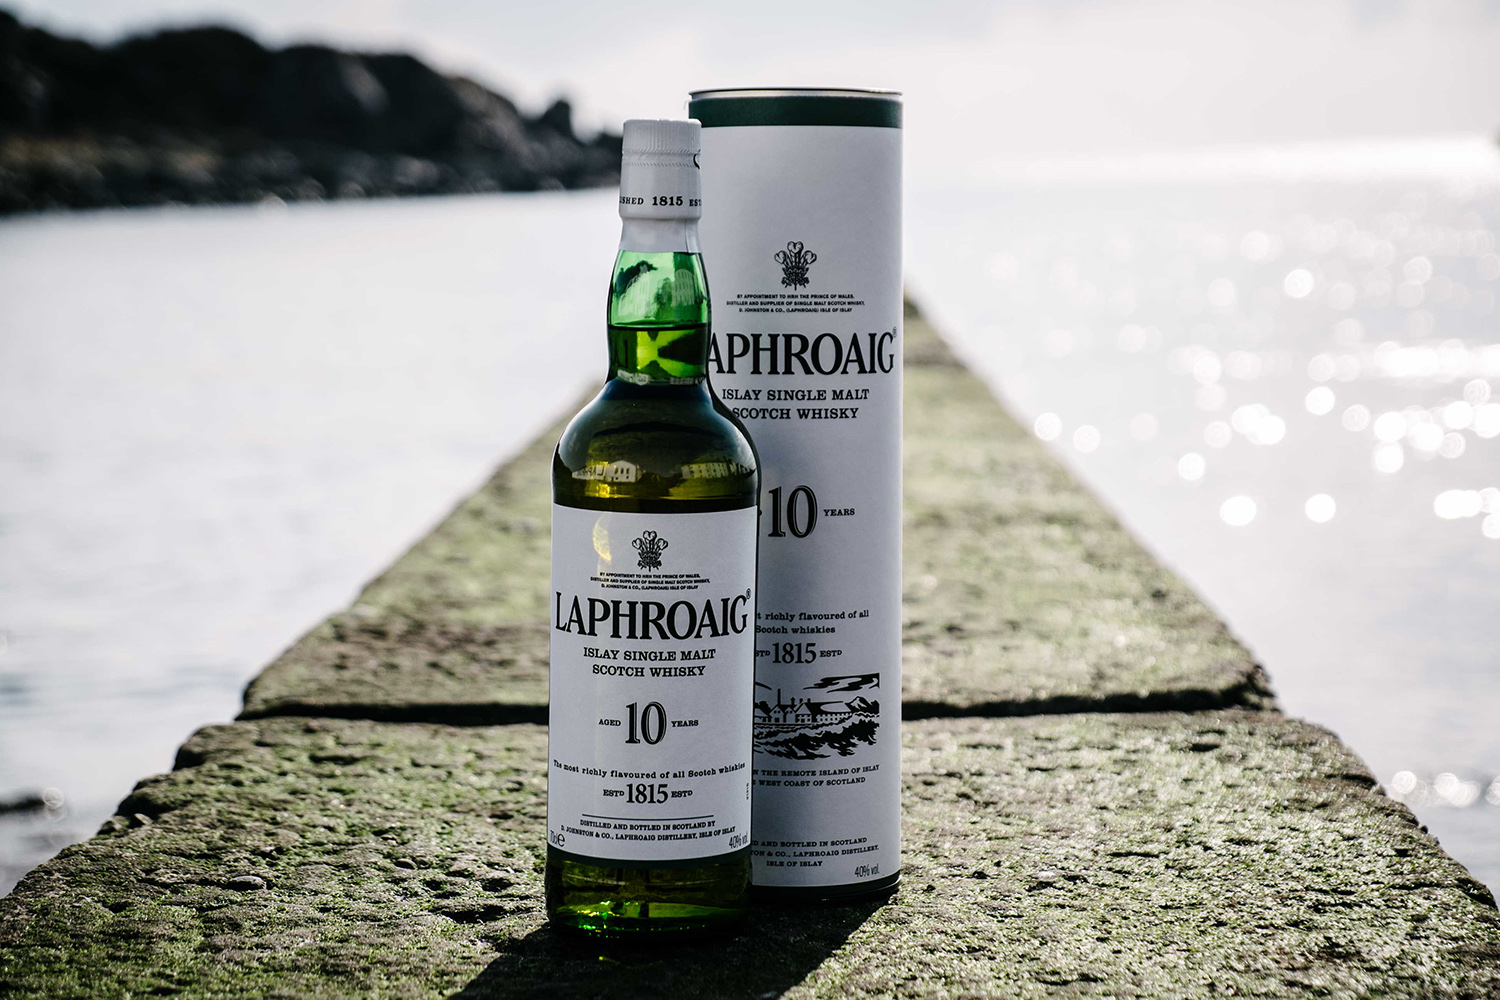 Laphroaig Scotch Whisky bottle and box